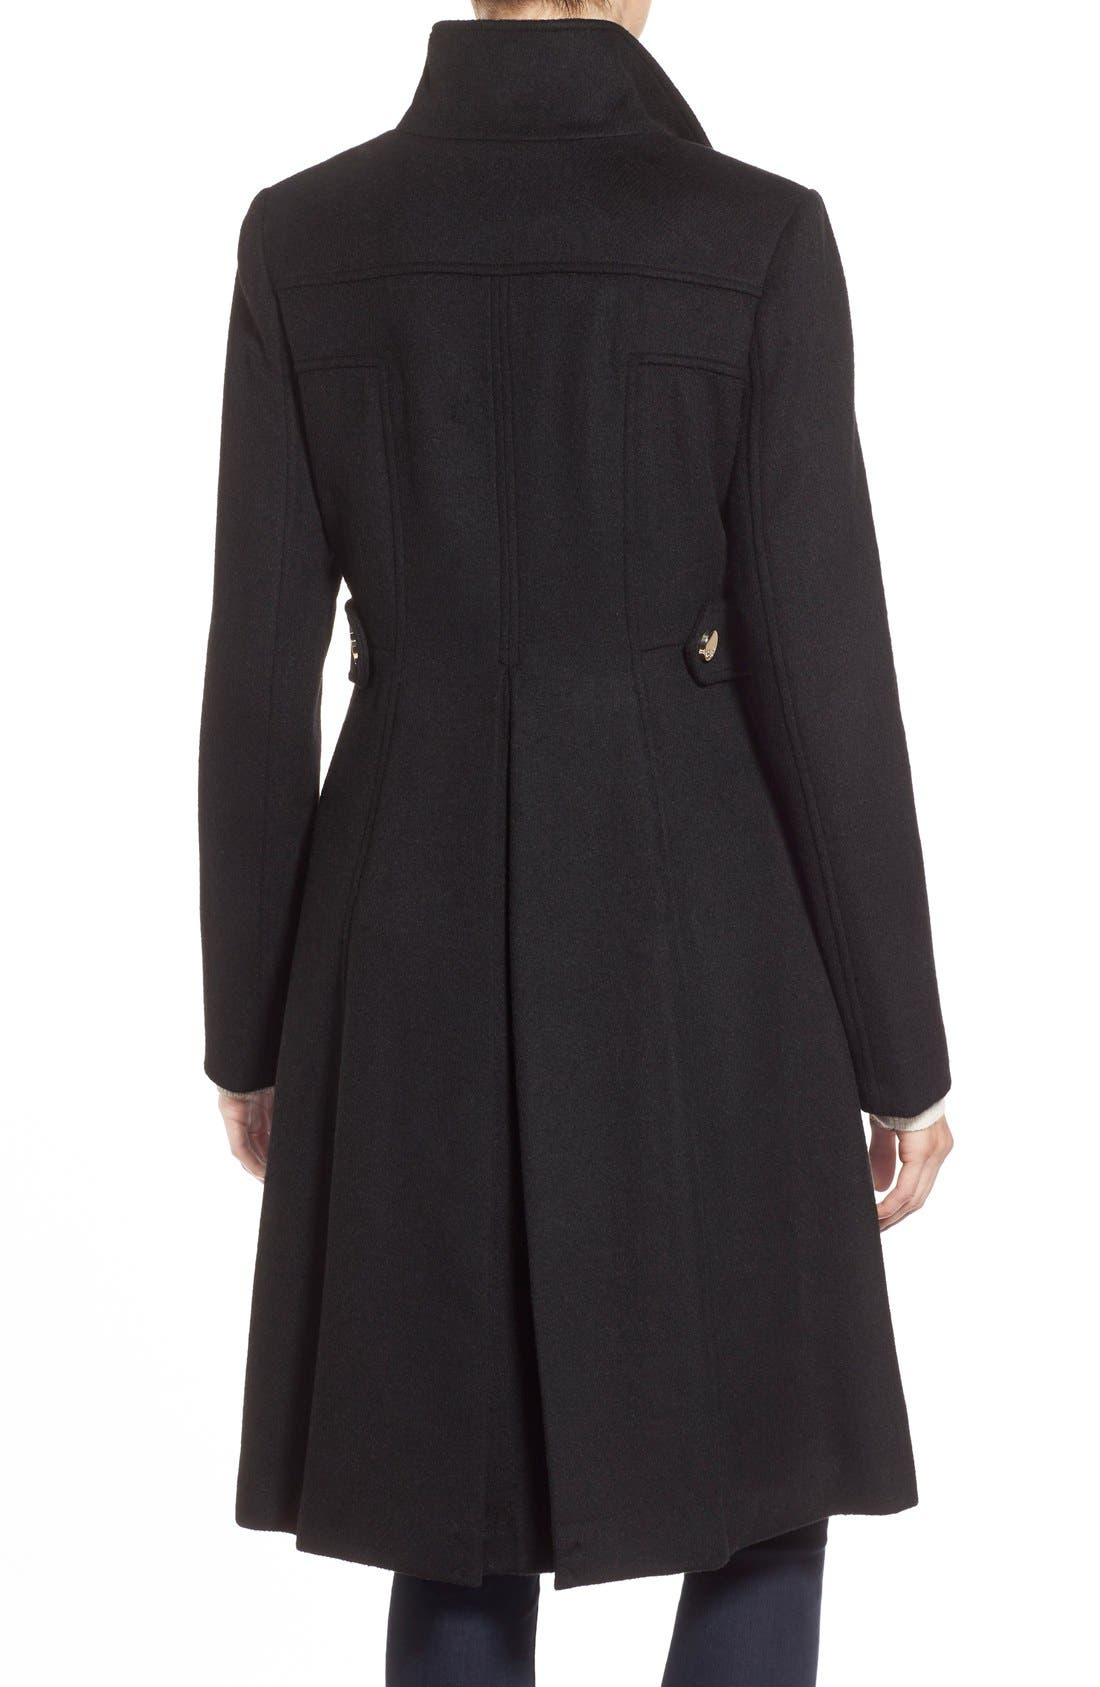 Wool Blend Long Military Coat,                             Alternate thumbnail 3, color,                             001